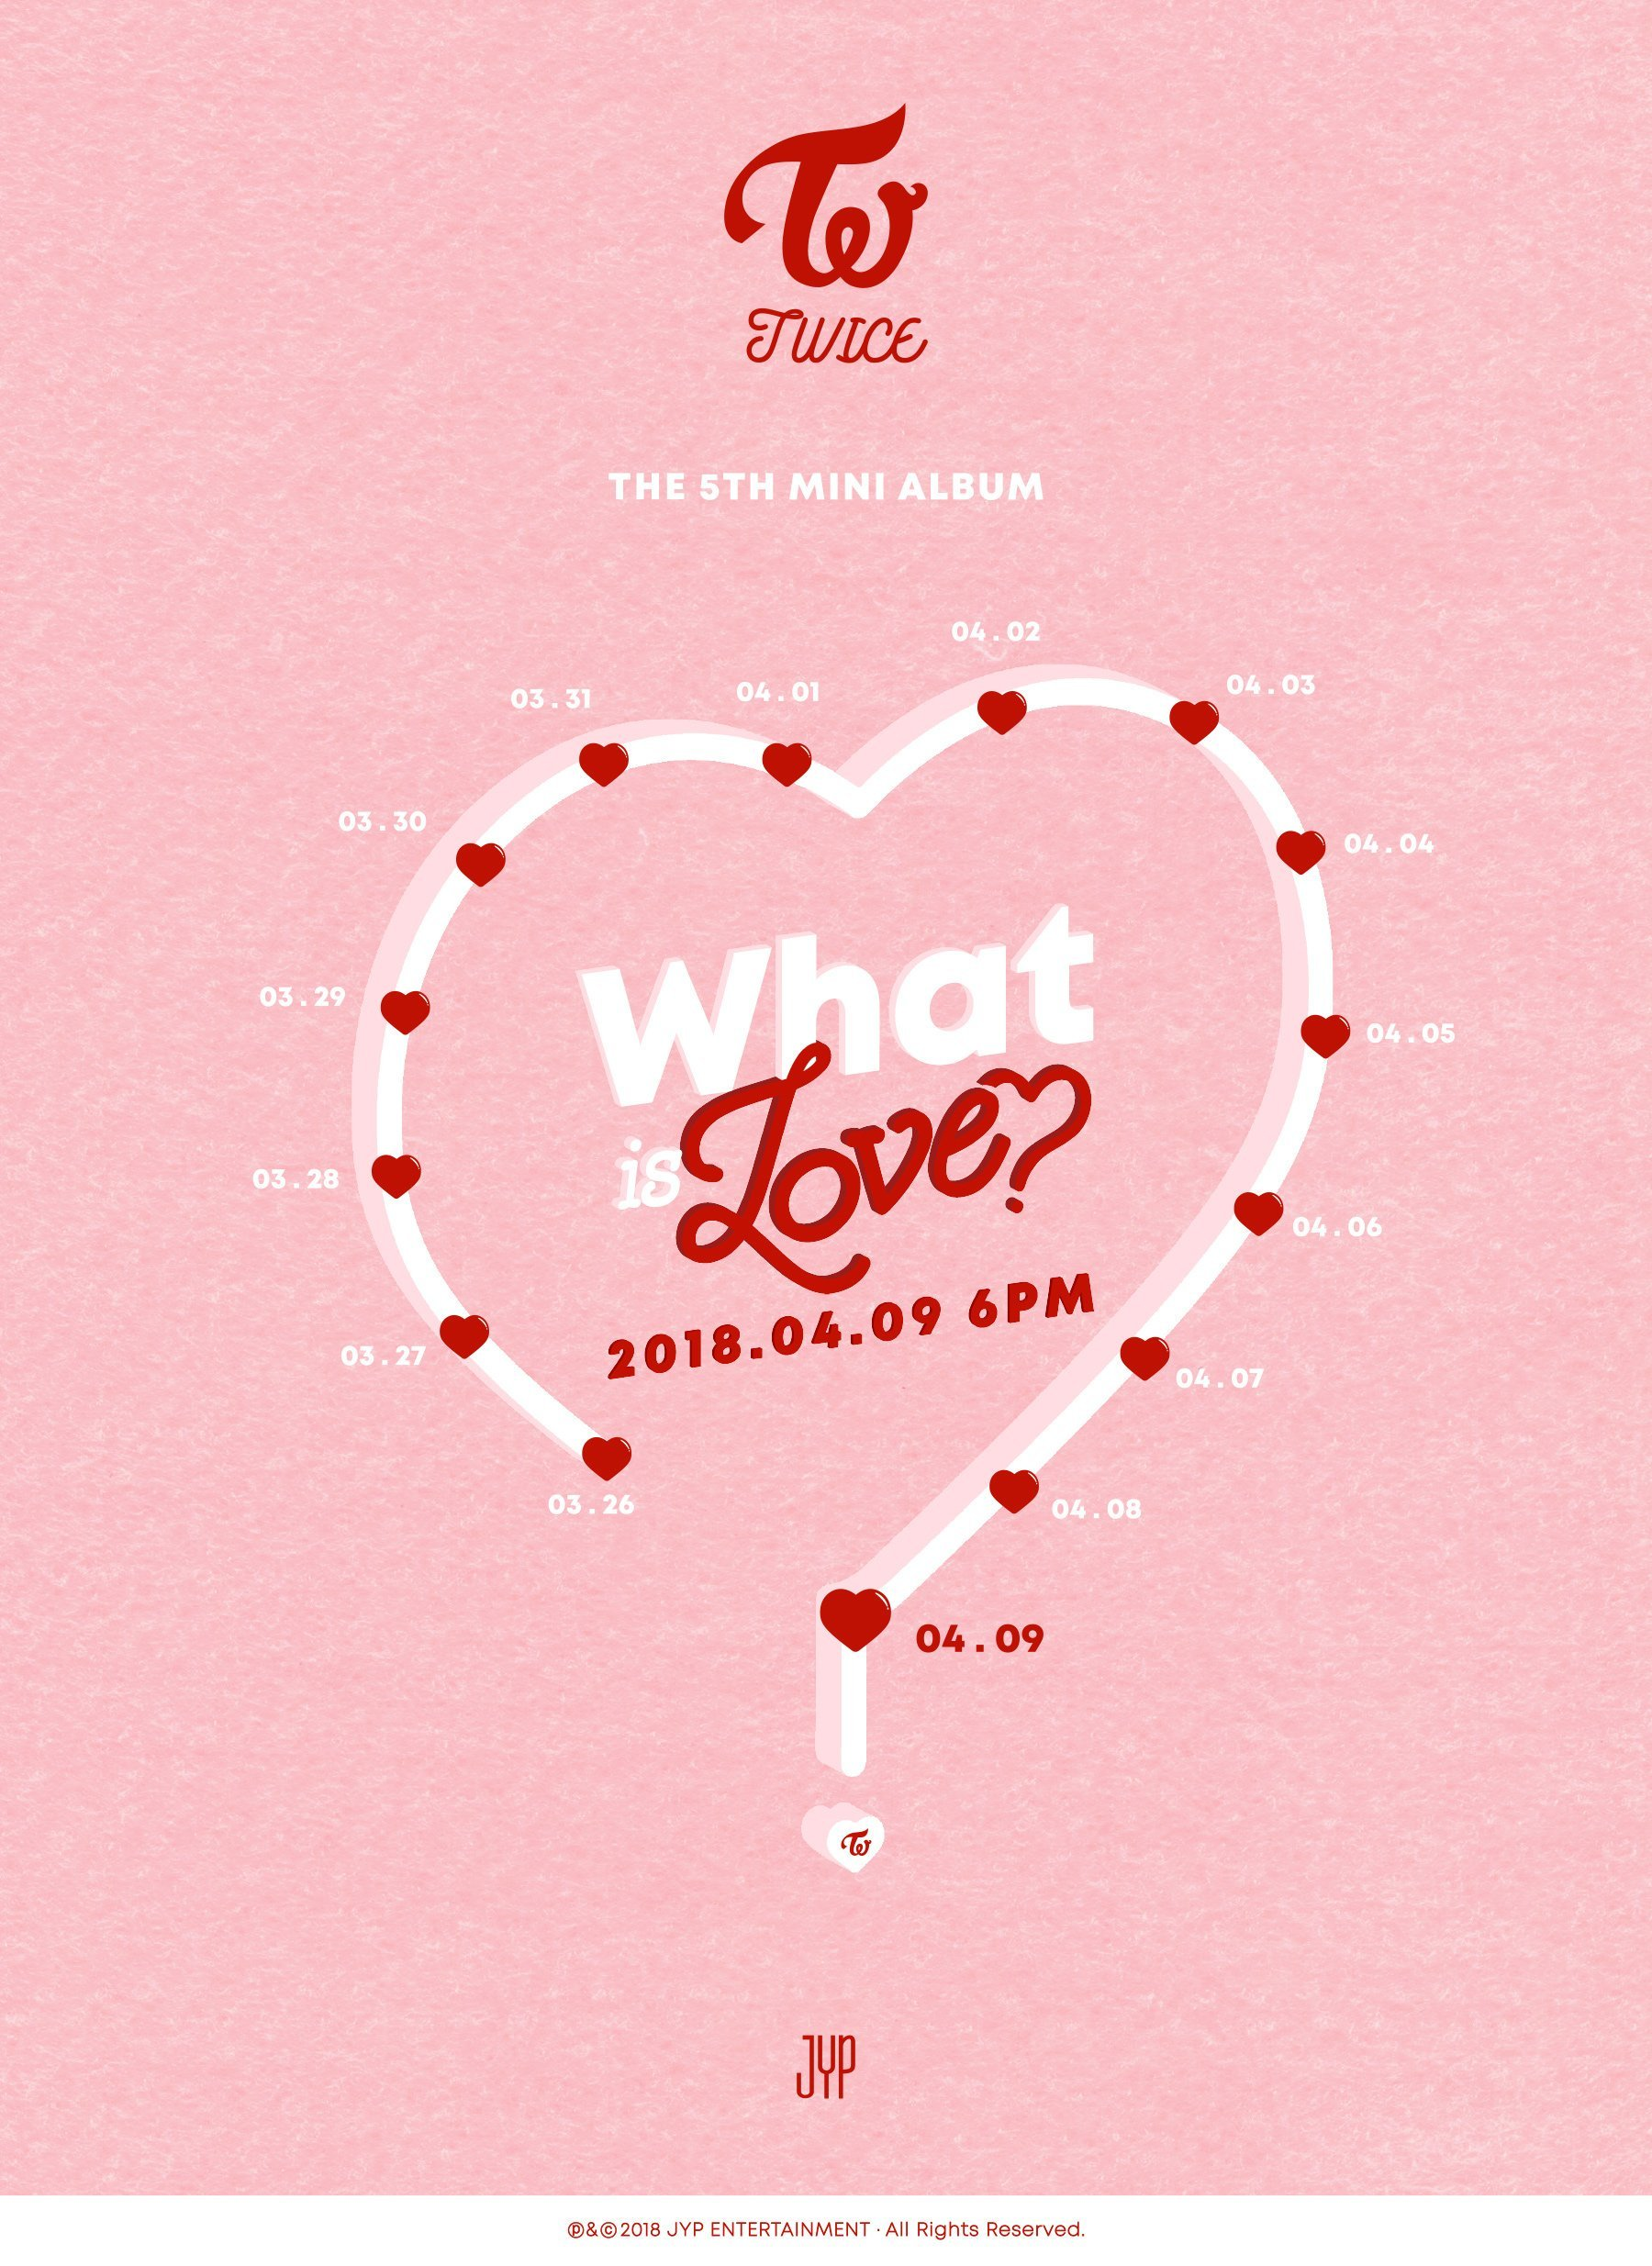 I need Love font, and twice font